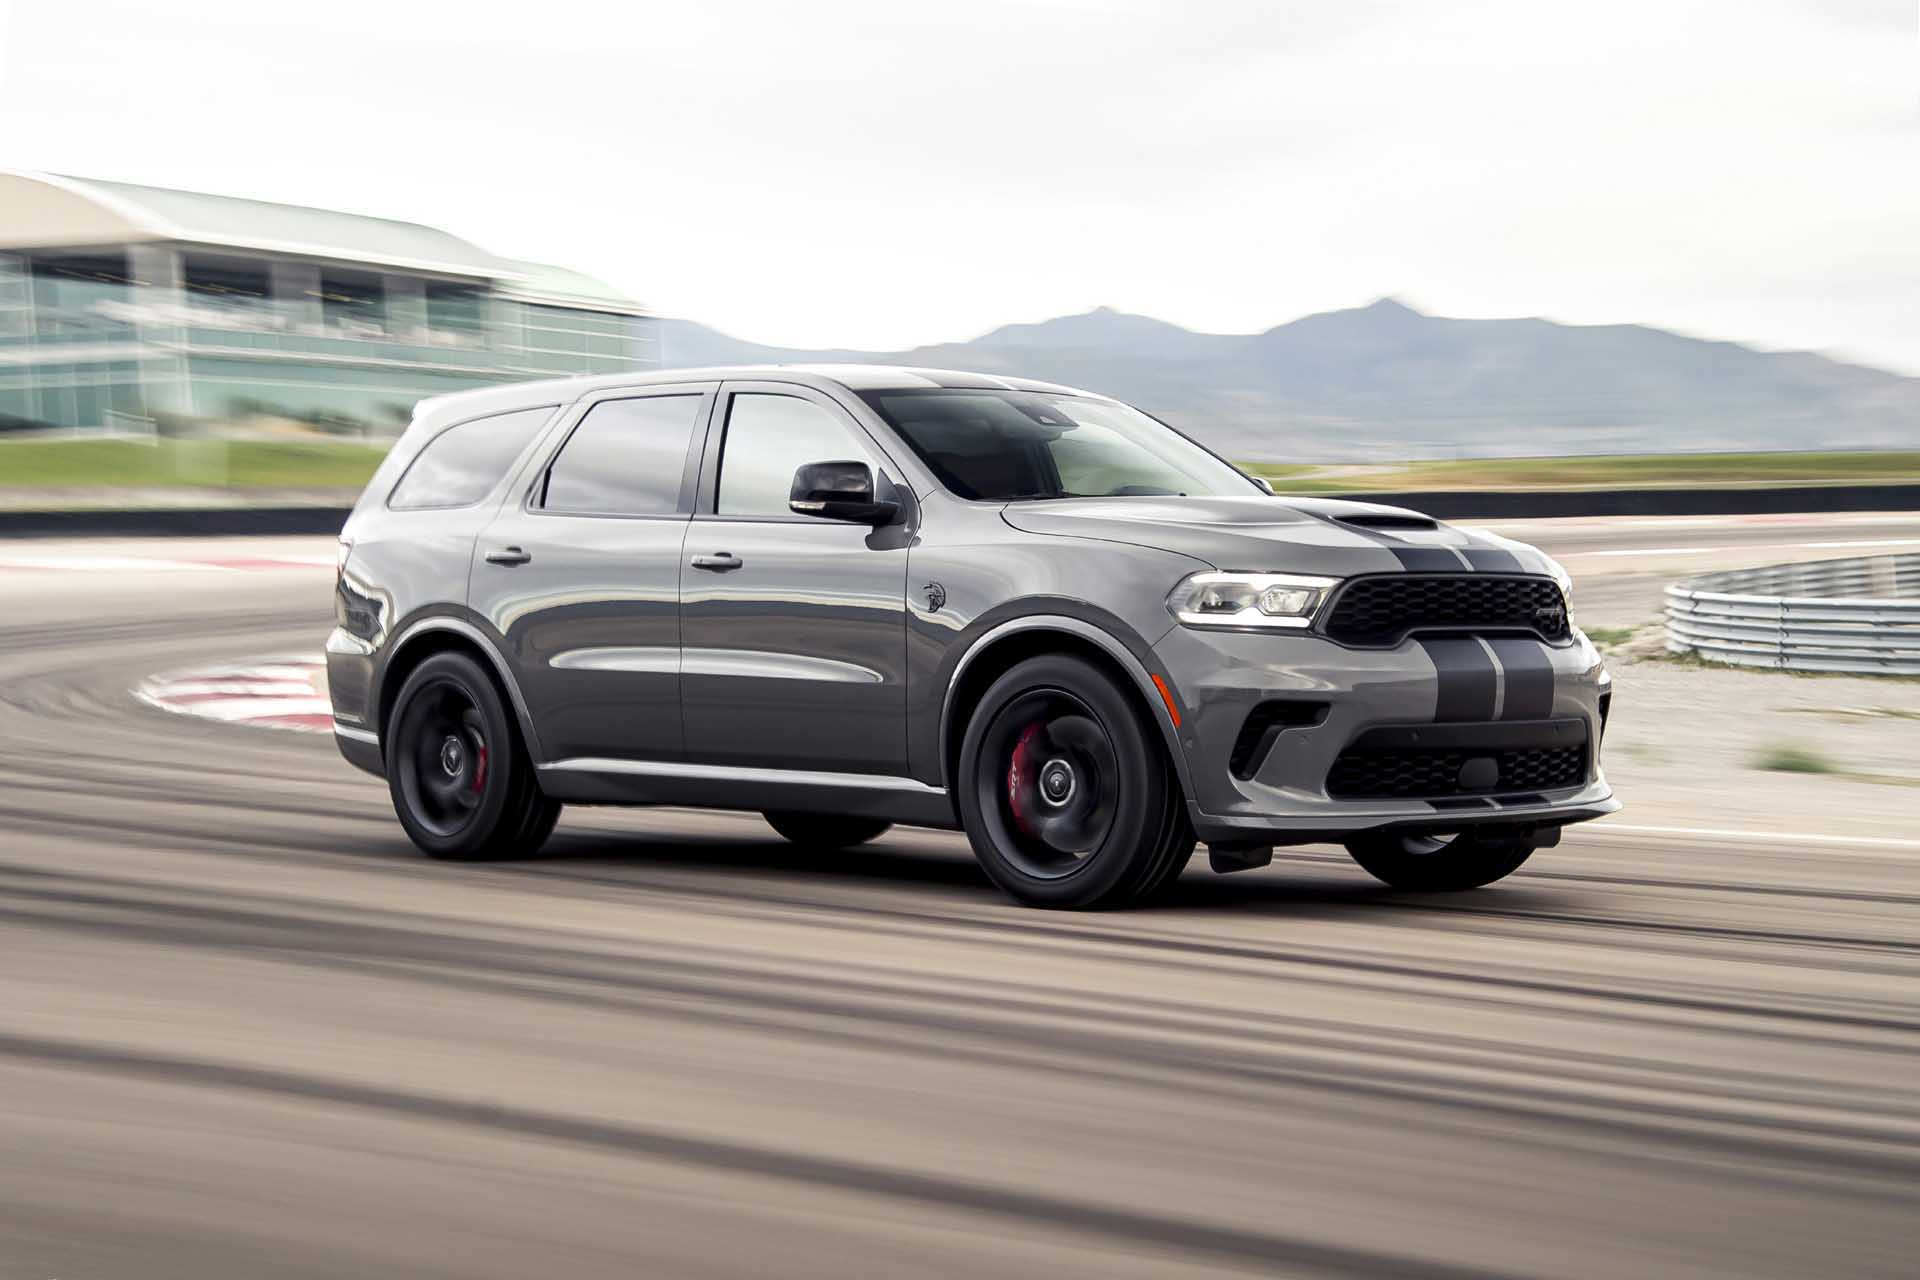 2021 Dodge Durango Srt Hellcat: Dodge//srt Introduces The Most P